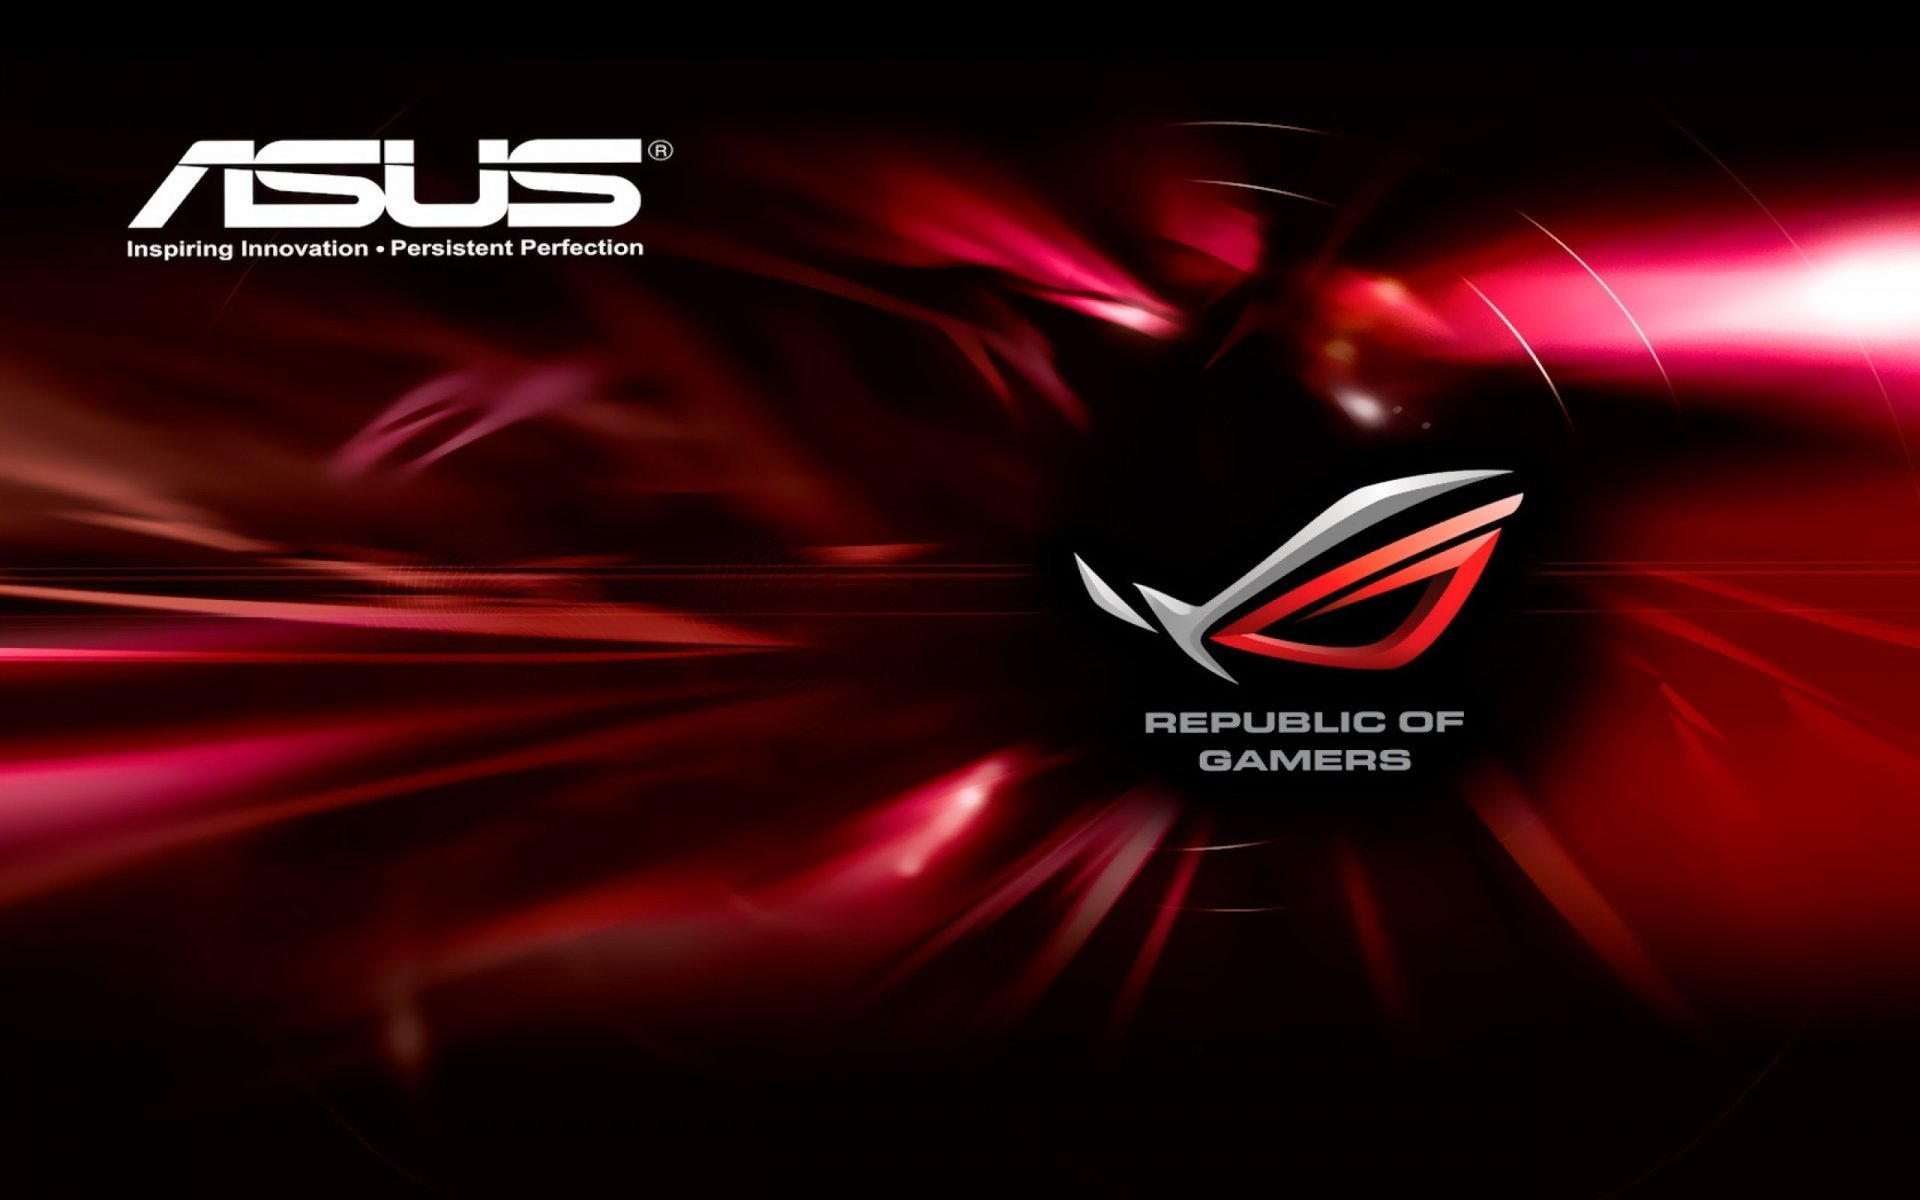 High Resolution Republic Of Gamers ROG Hd 1920x1200 Wallpaper ID390820 For Computer